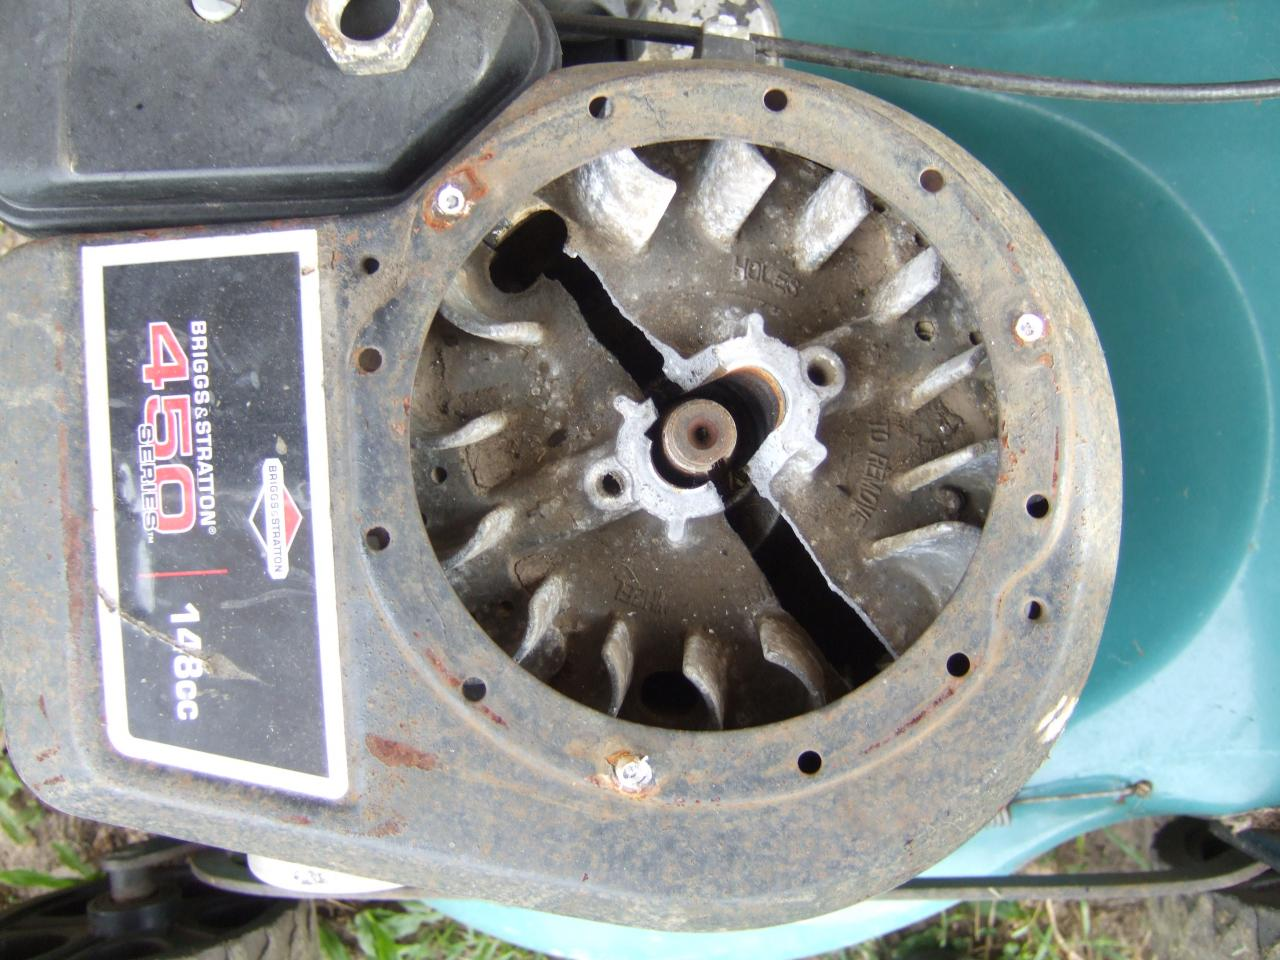 briggs and stratton 450 series 148cc service manual